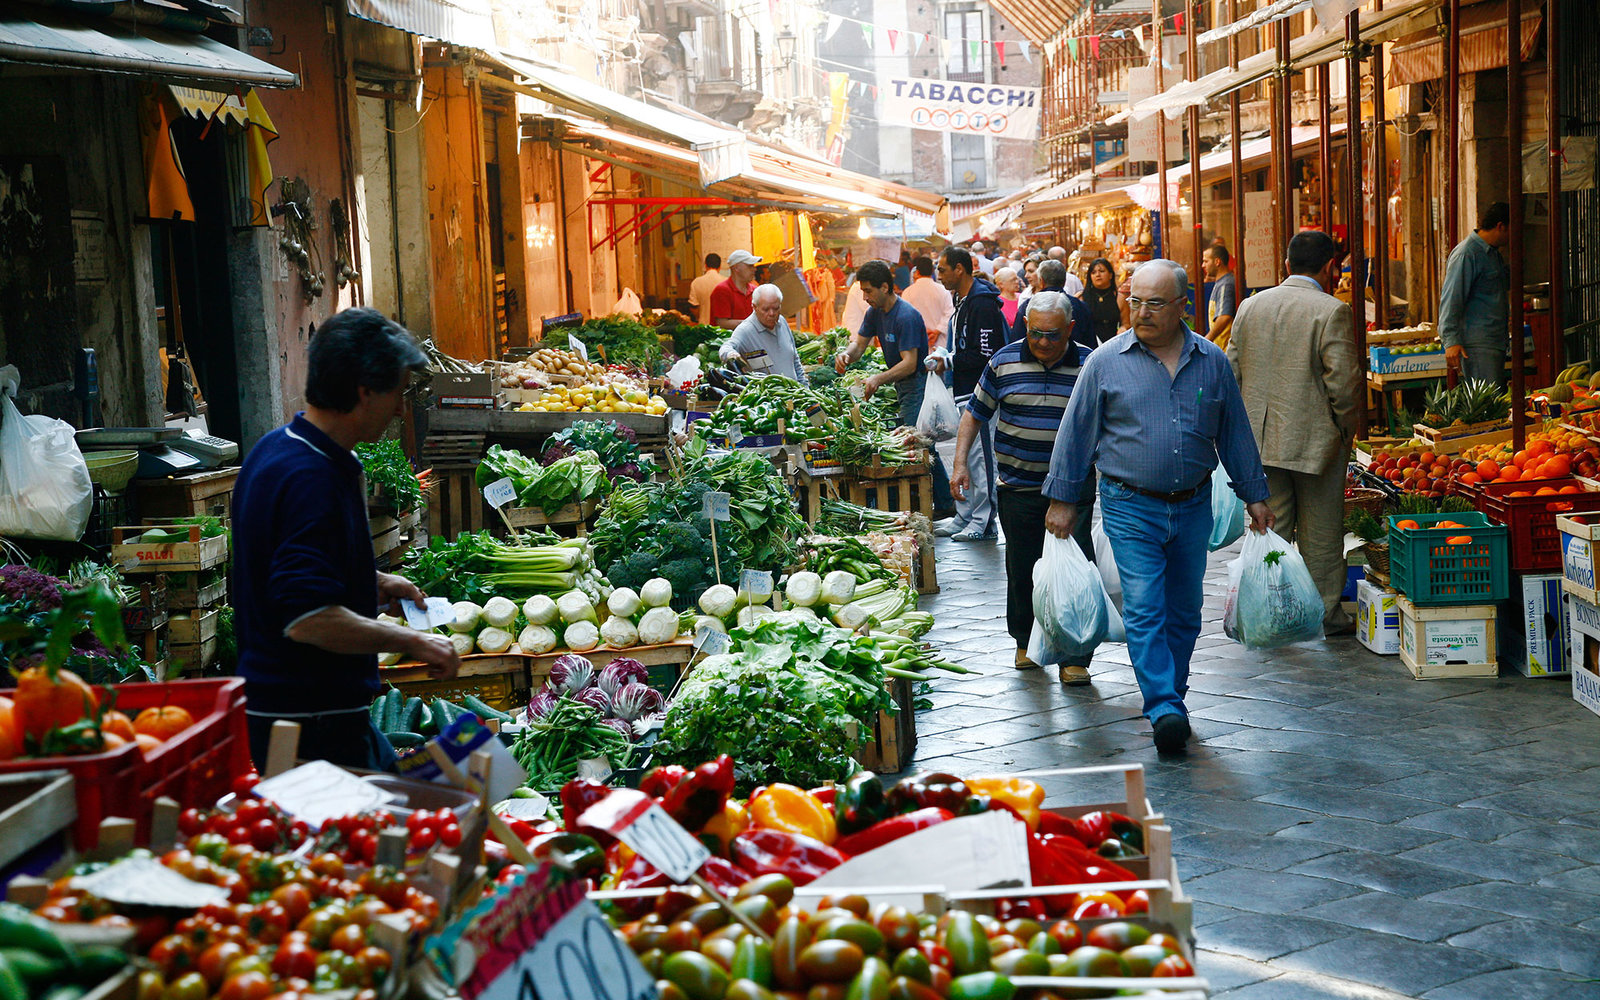 AHM68N Catania s food market near the fish market Catania sicily. Image shot 09/2007. Exact date unknown.